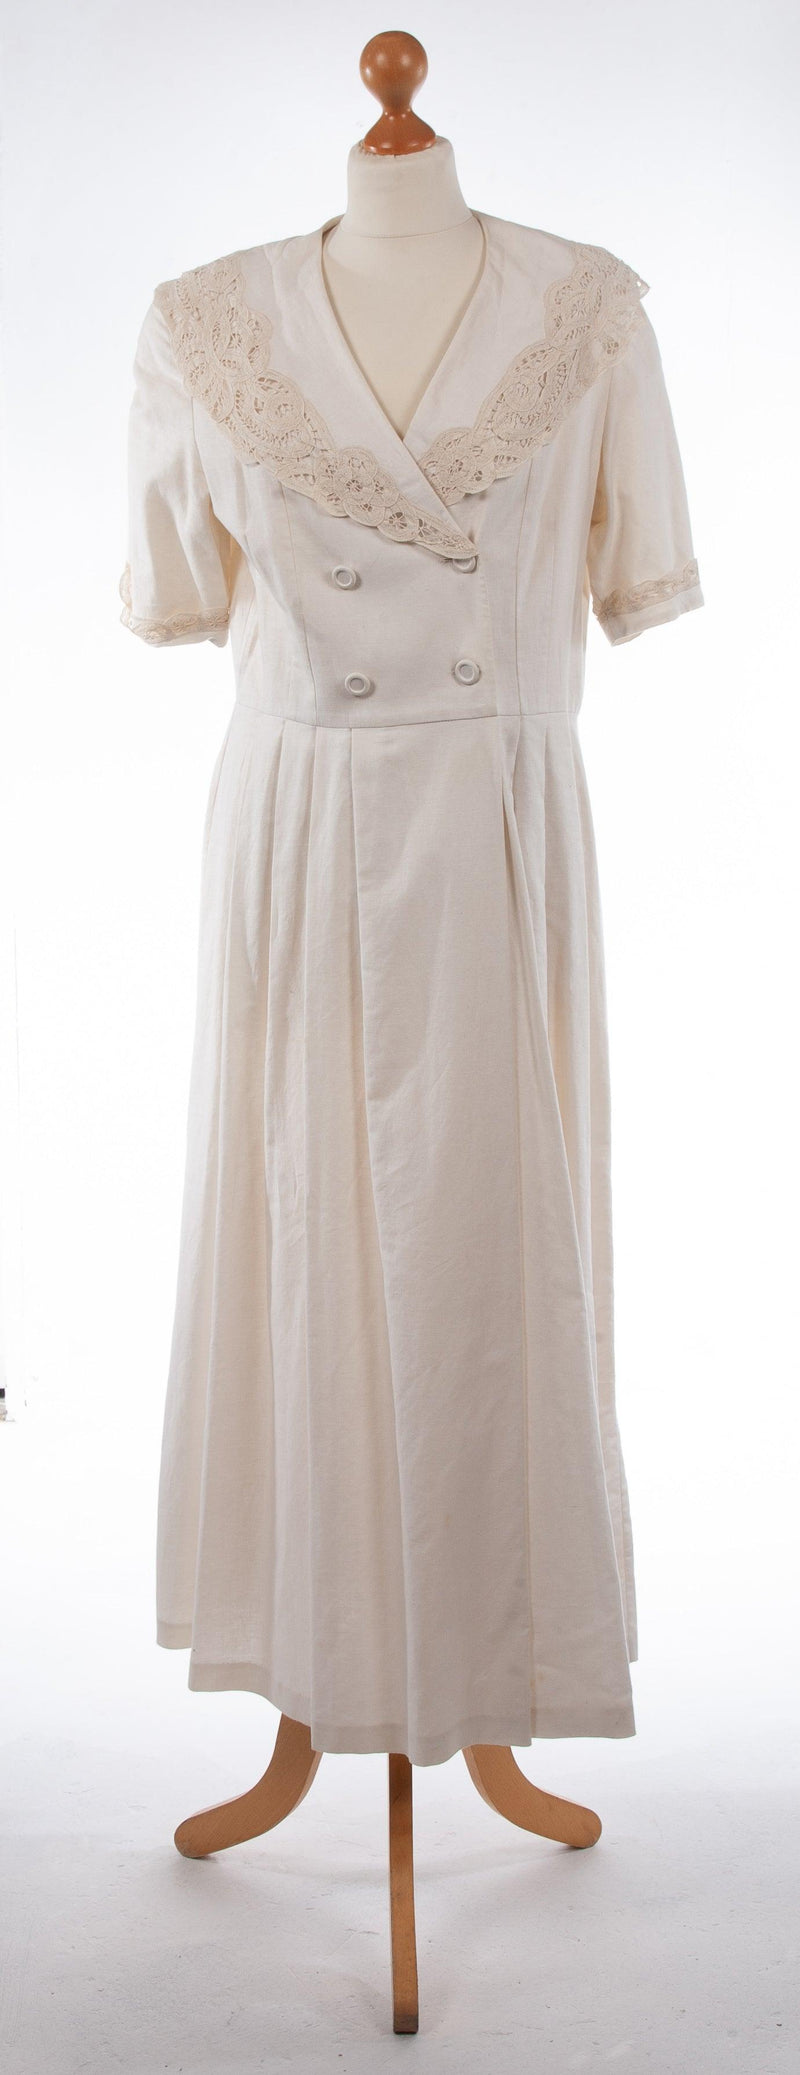 Laura Ashley Cream Linen and Cotton Summer Dress With Lace Collar UK 14